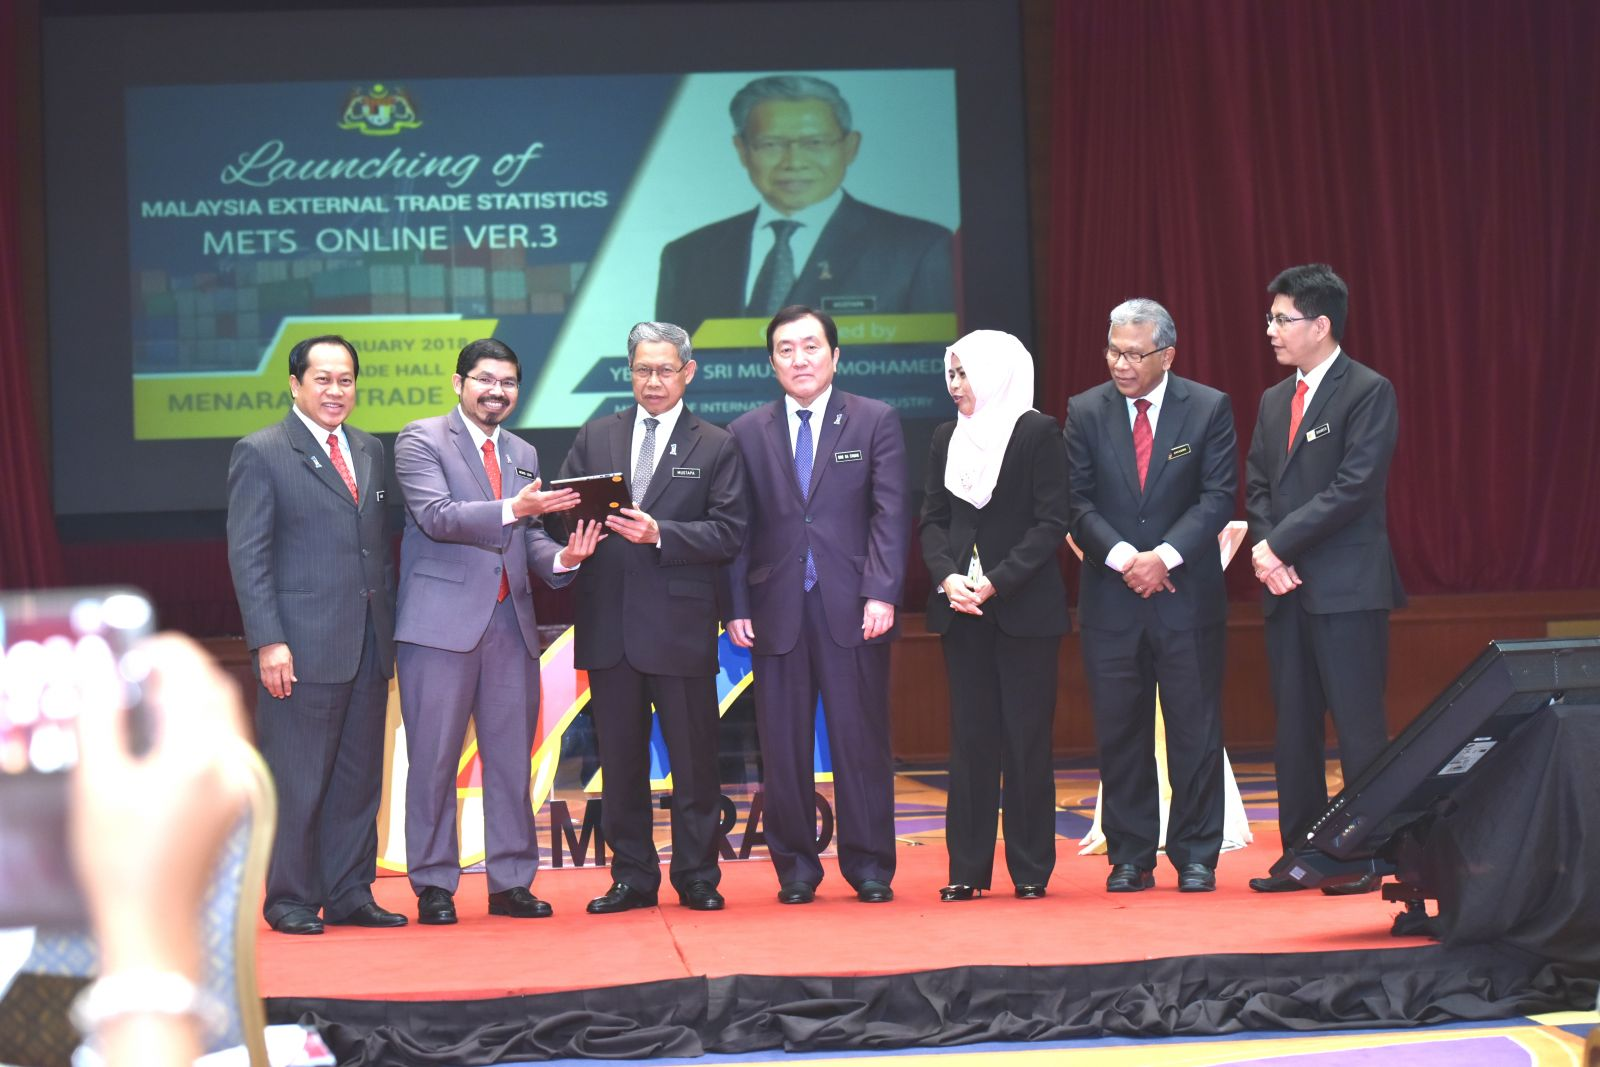 Launching of Malaysia External Trade Statistics, METS Online Ver.3